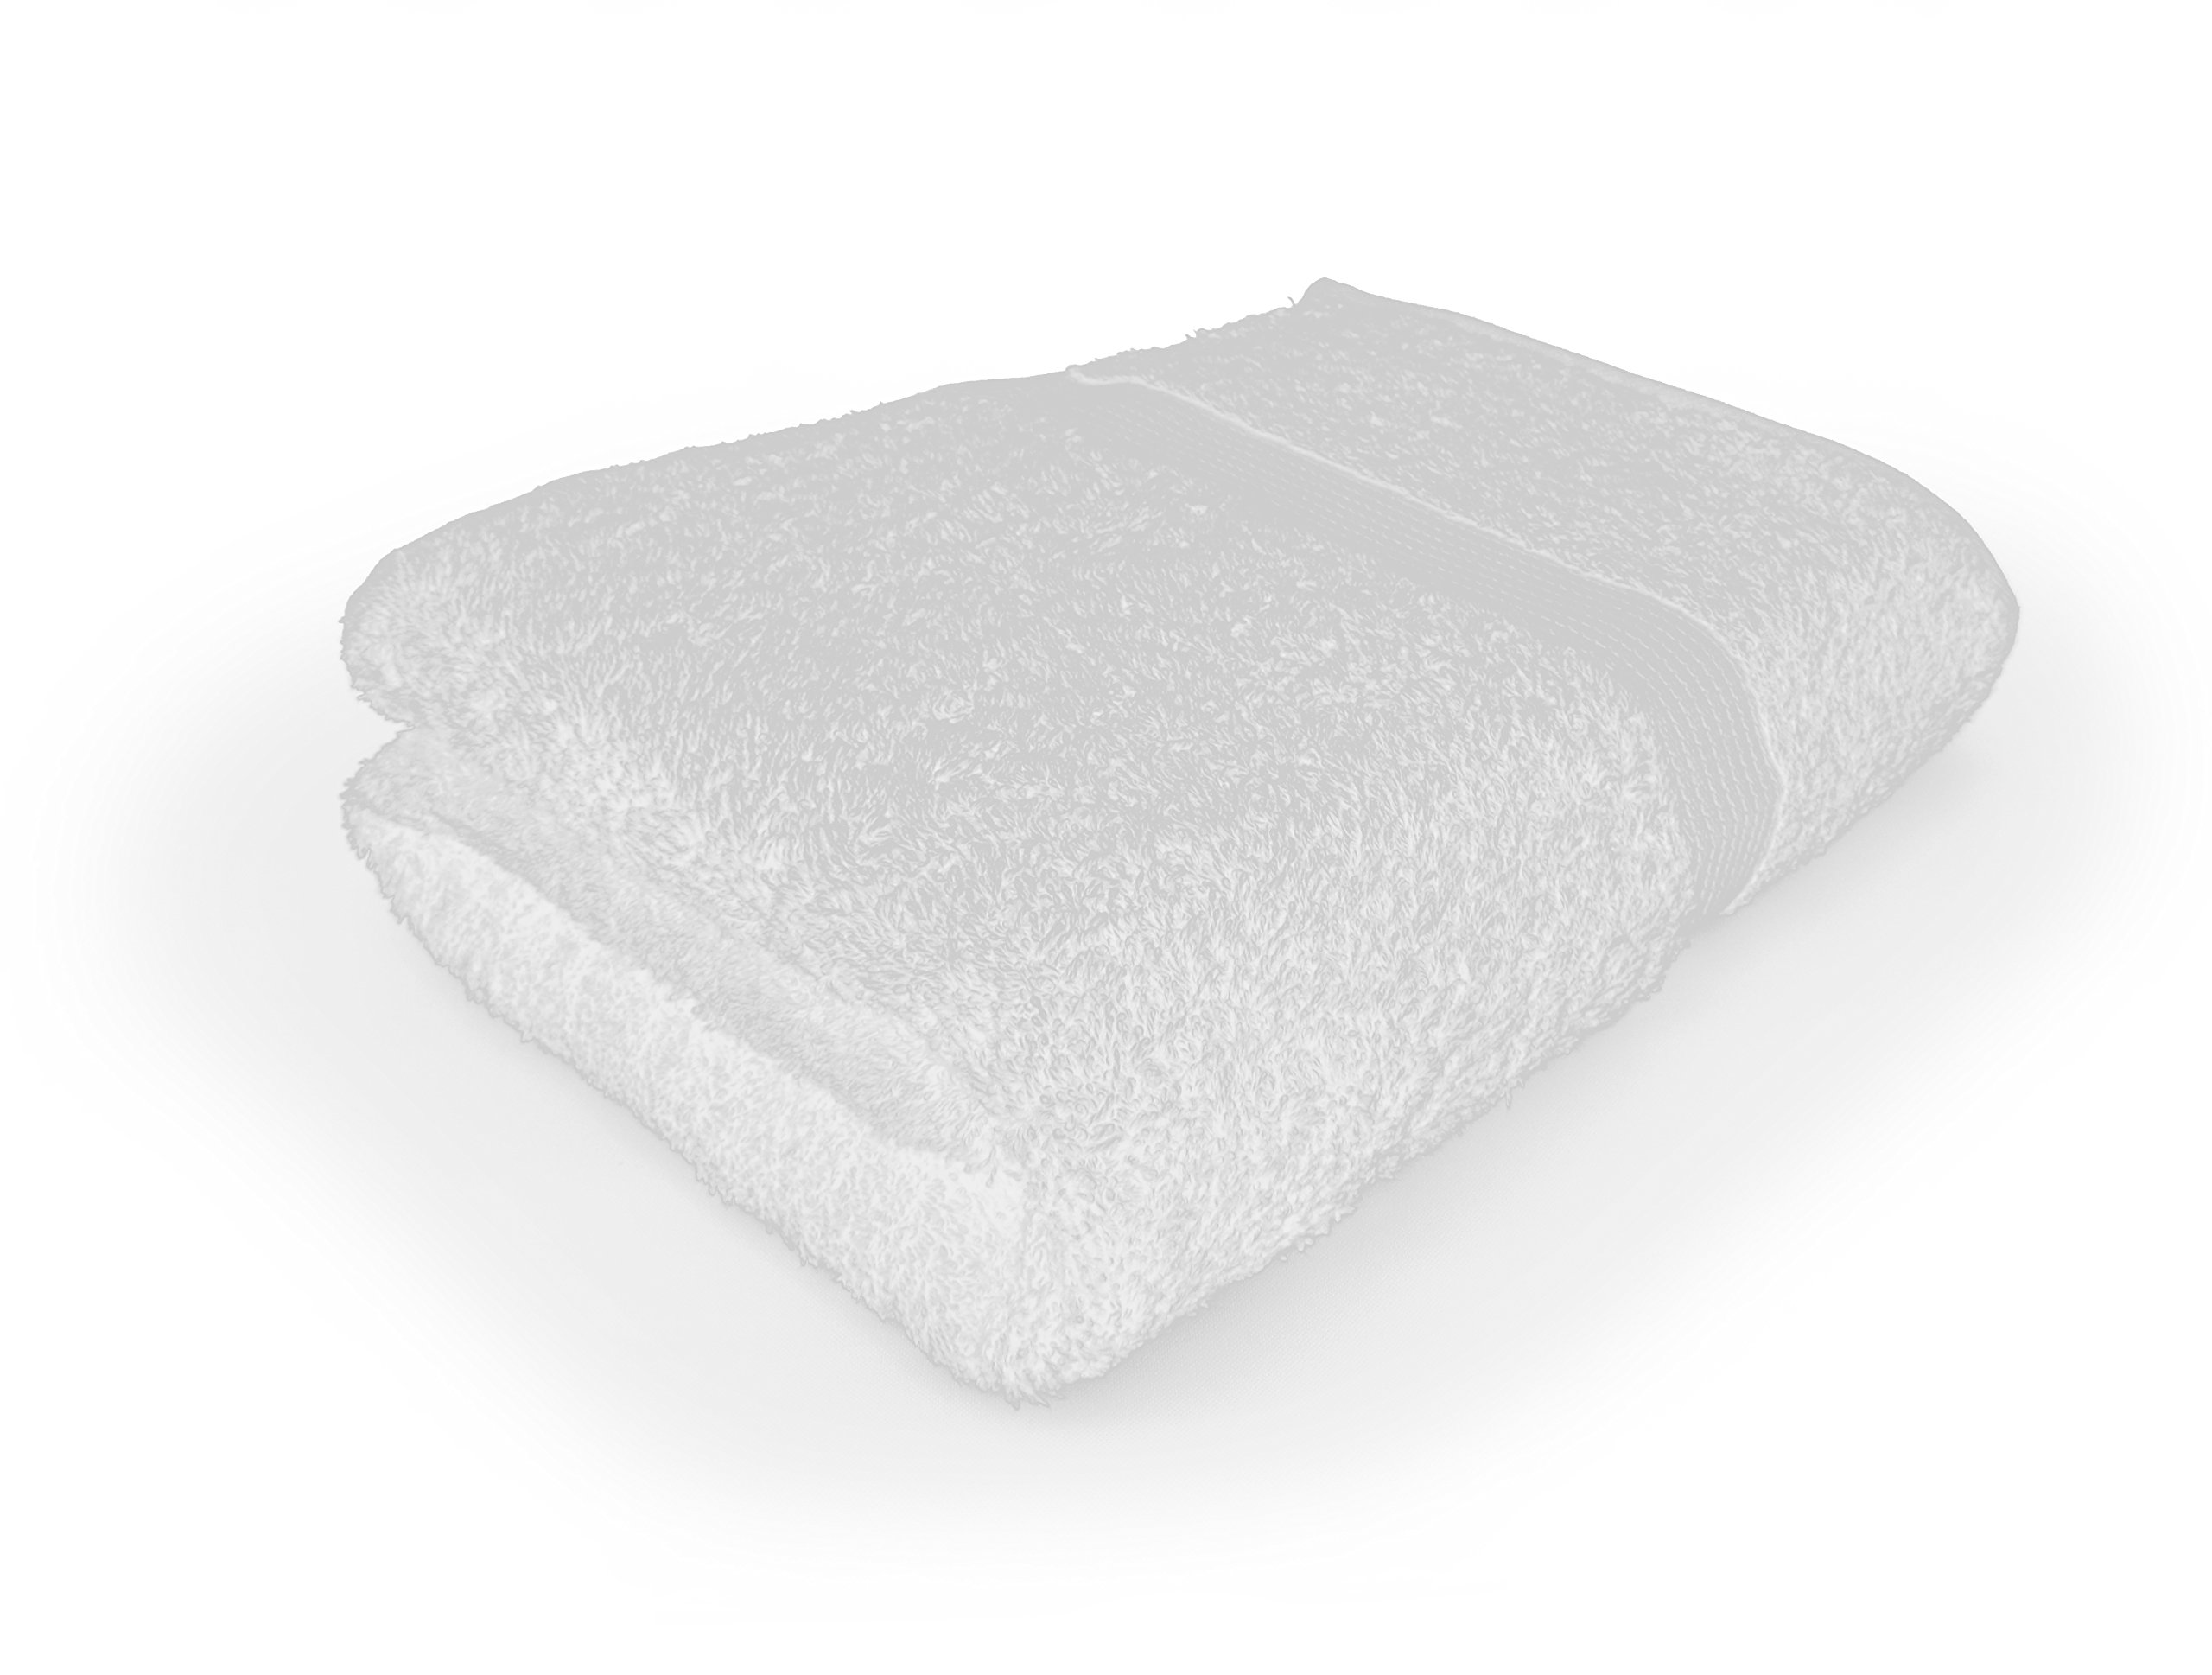 Fecido Deluxe Hotel & Spa Extremely Absorbent 100% Cotton Bath Sheet, White